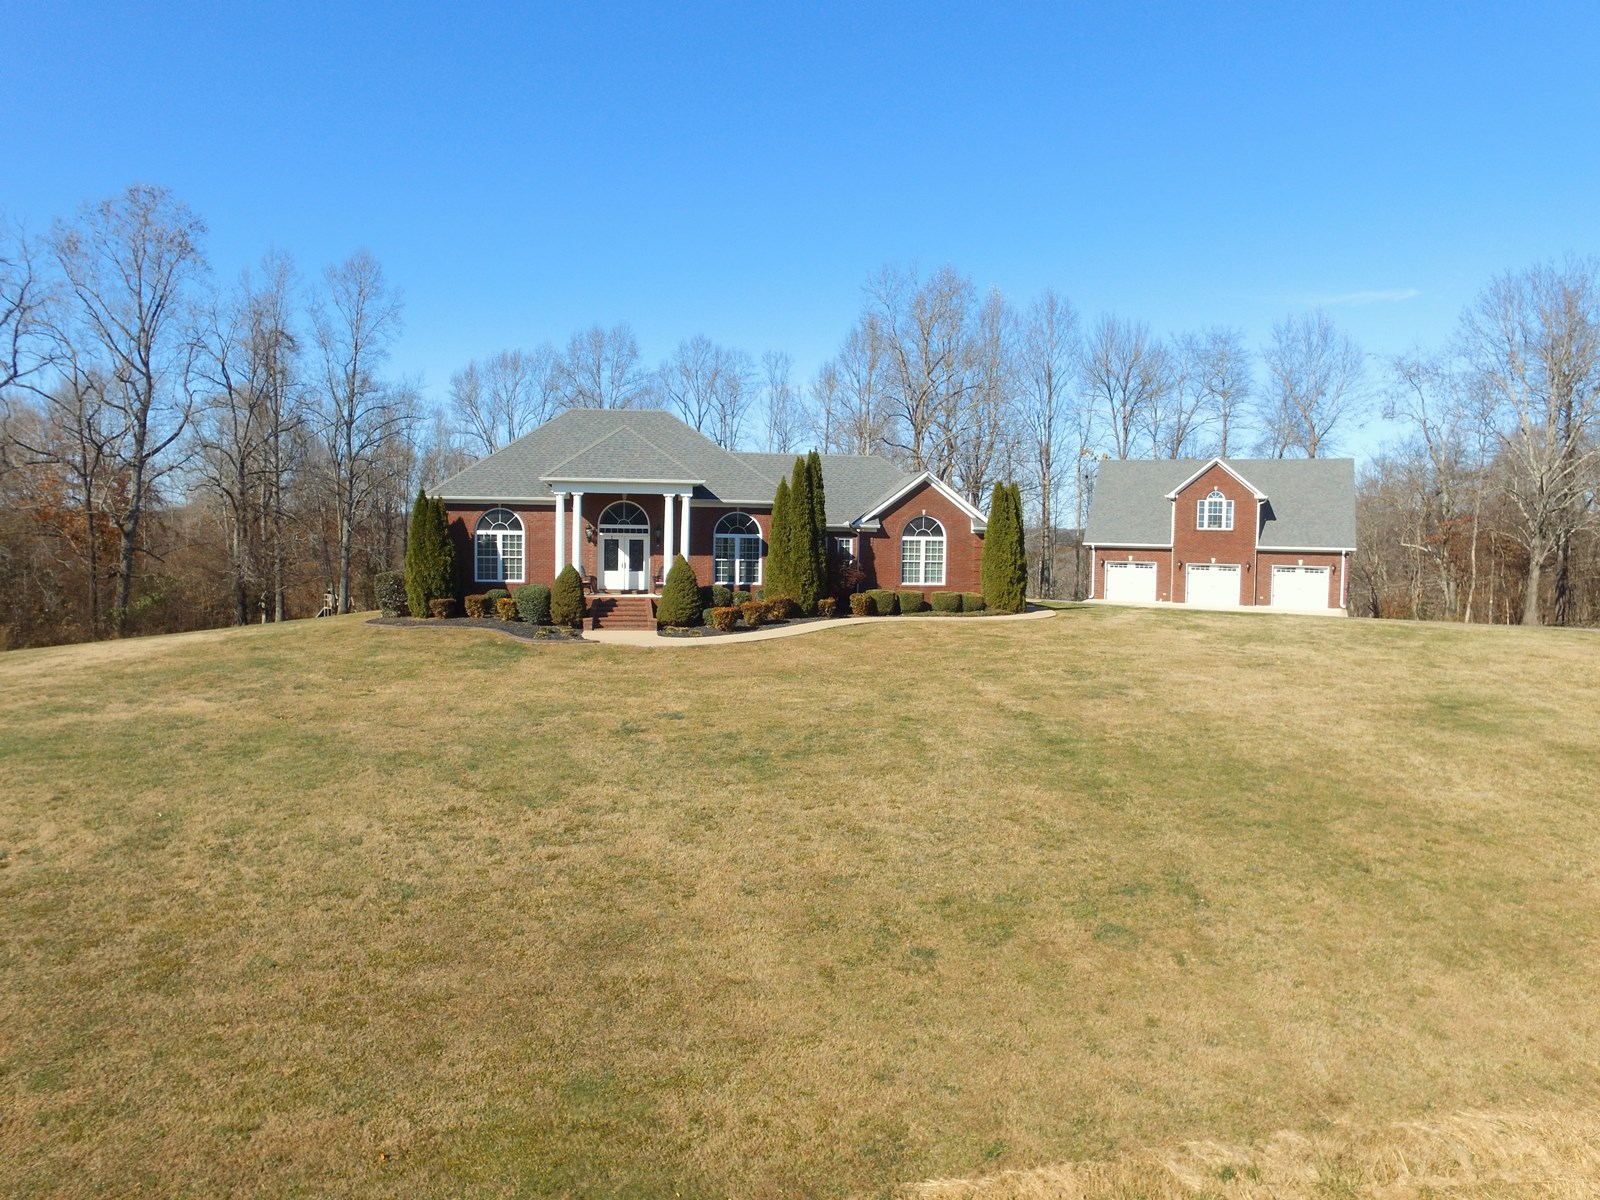 Country Home with Acreage for Sale in Santa Fe, Tennessee